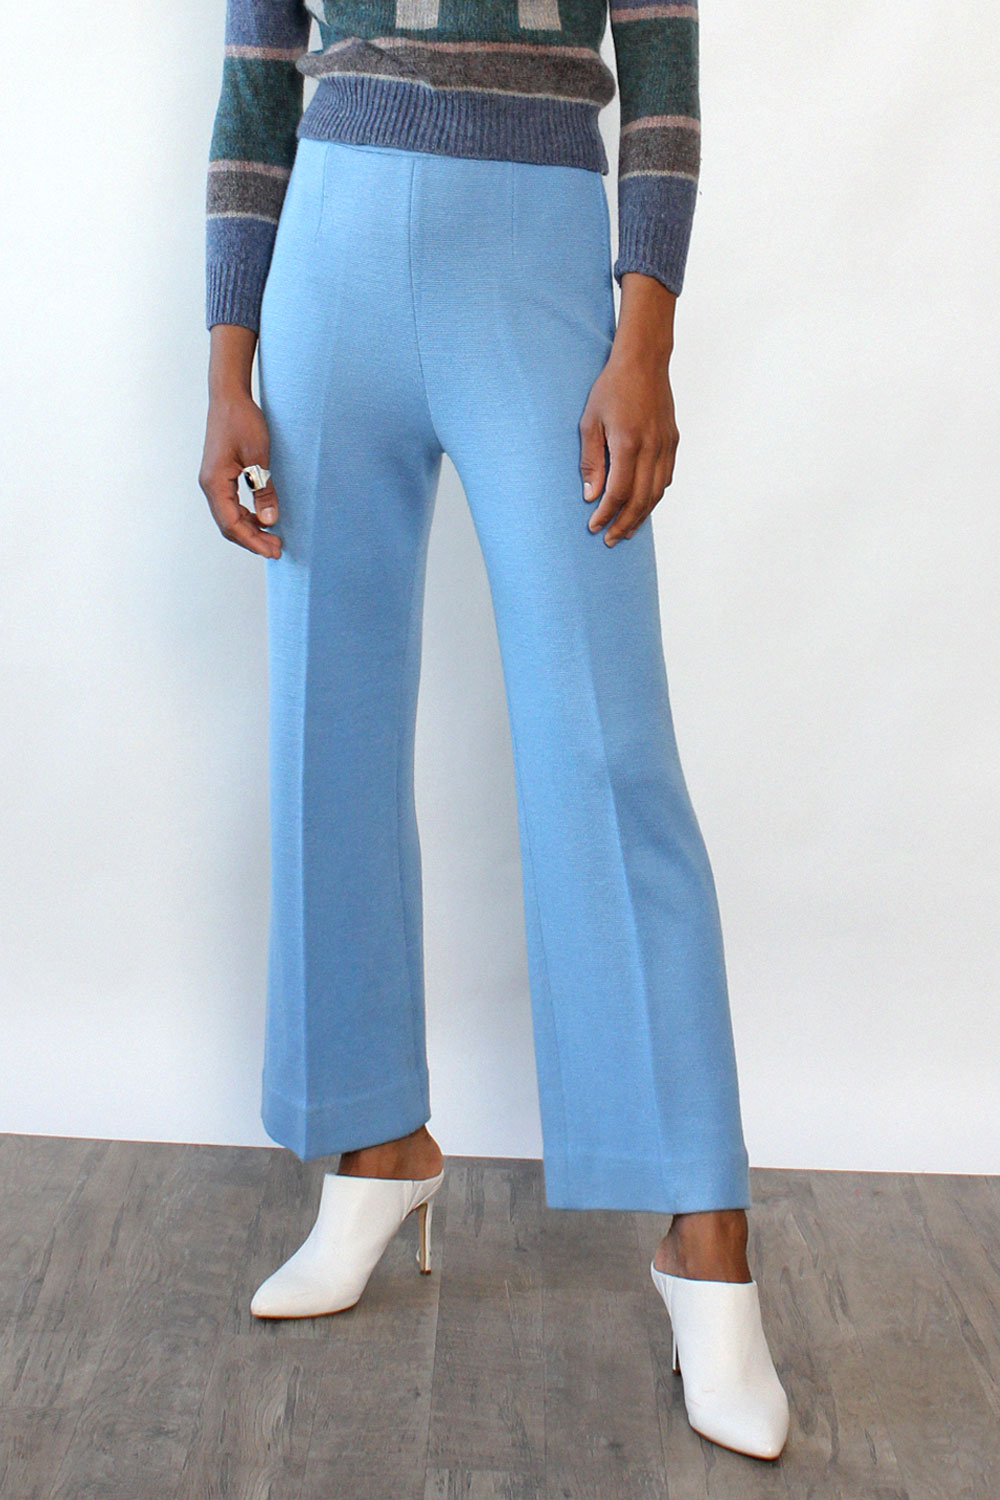 Sibleys Baby Blue Knit Flares M